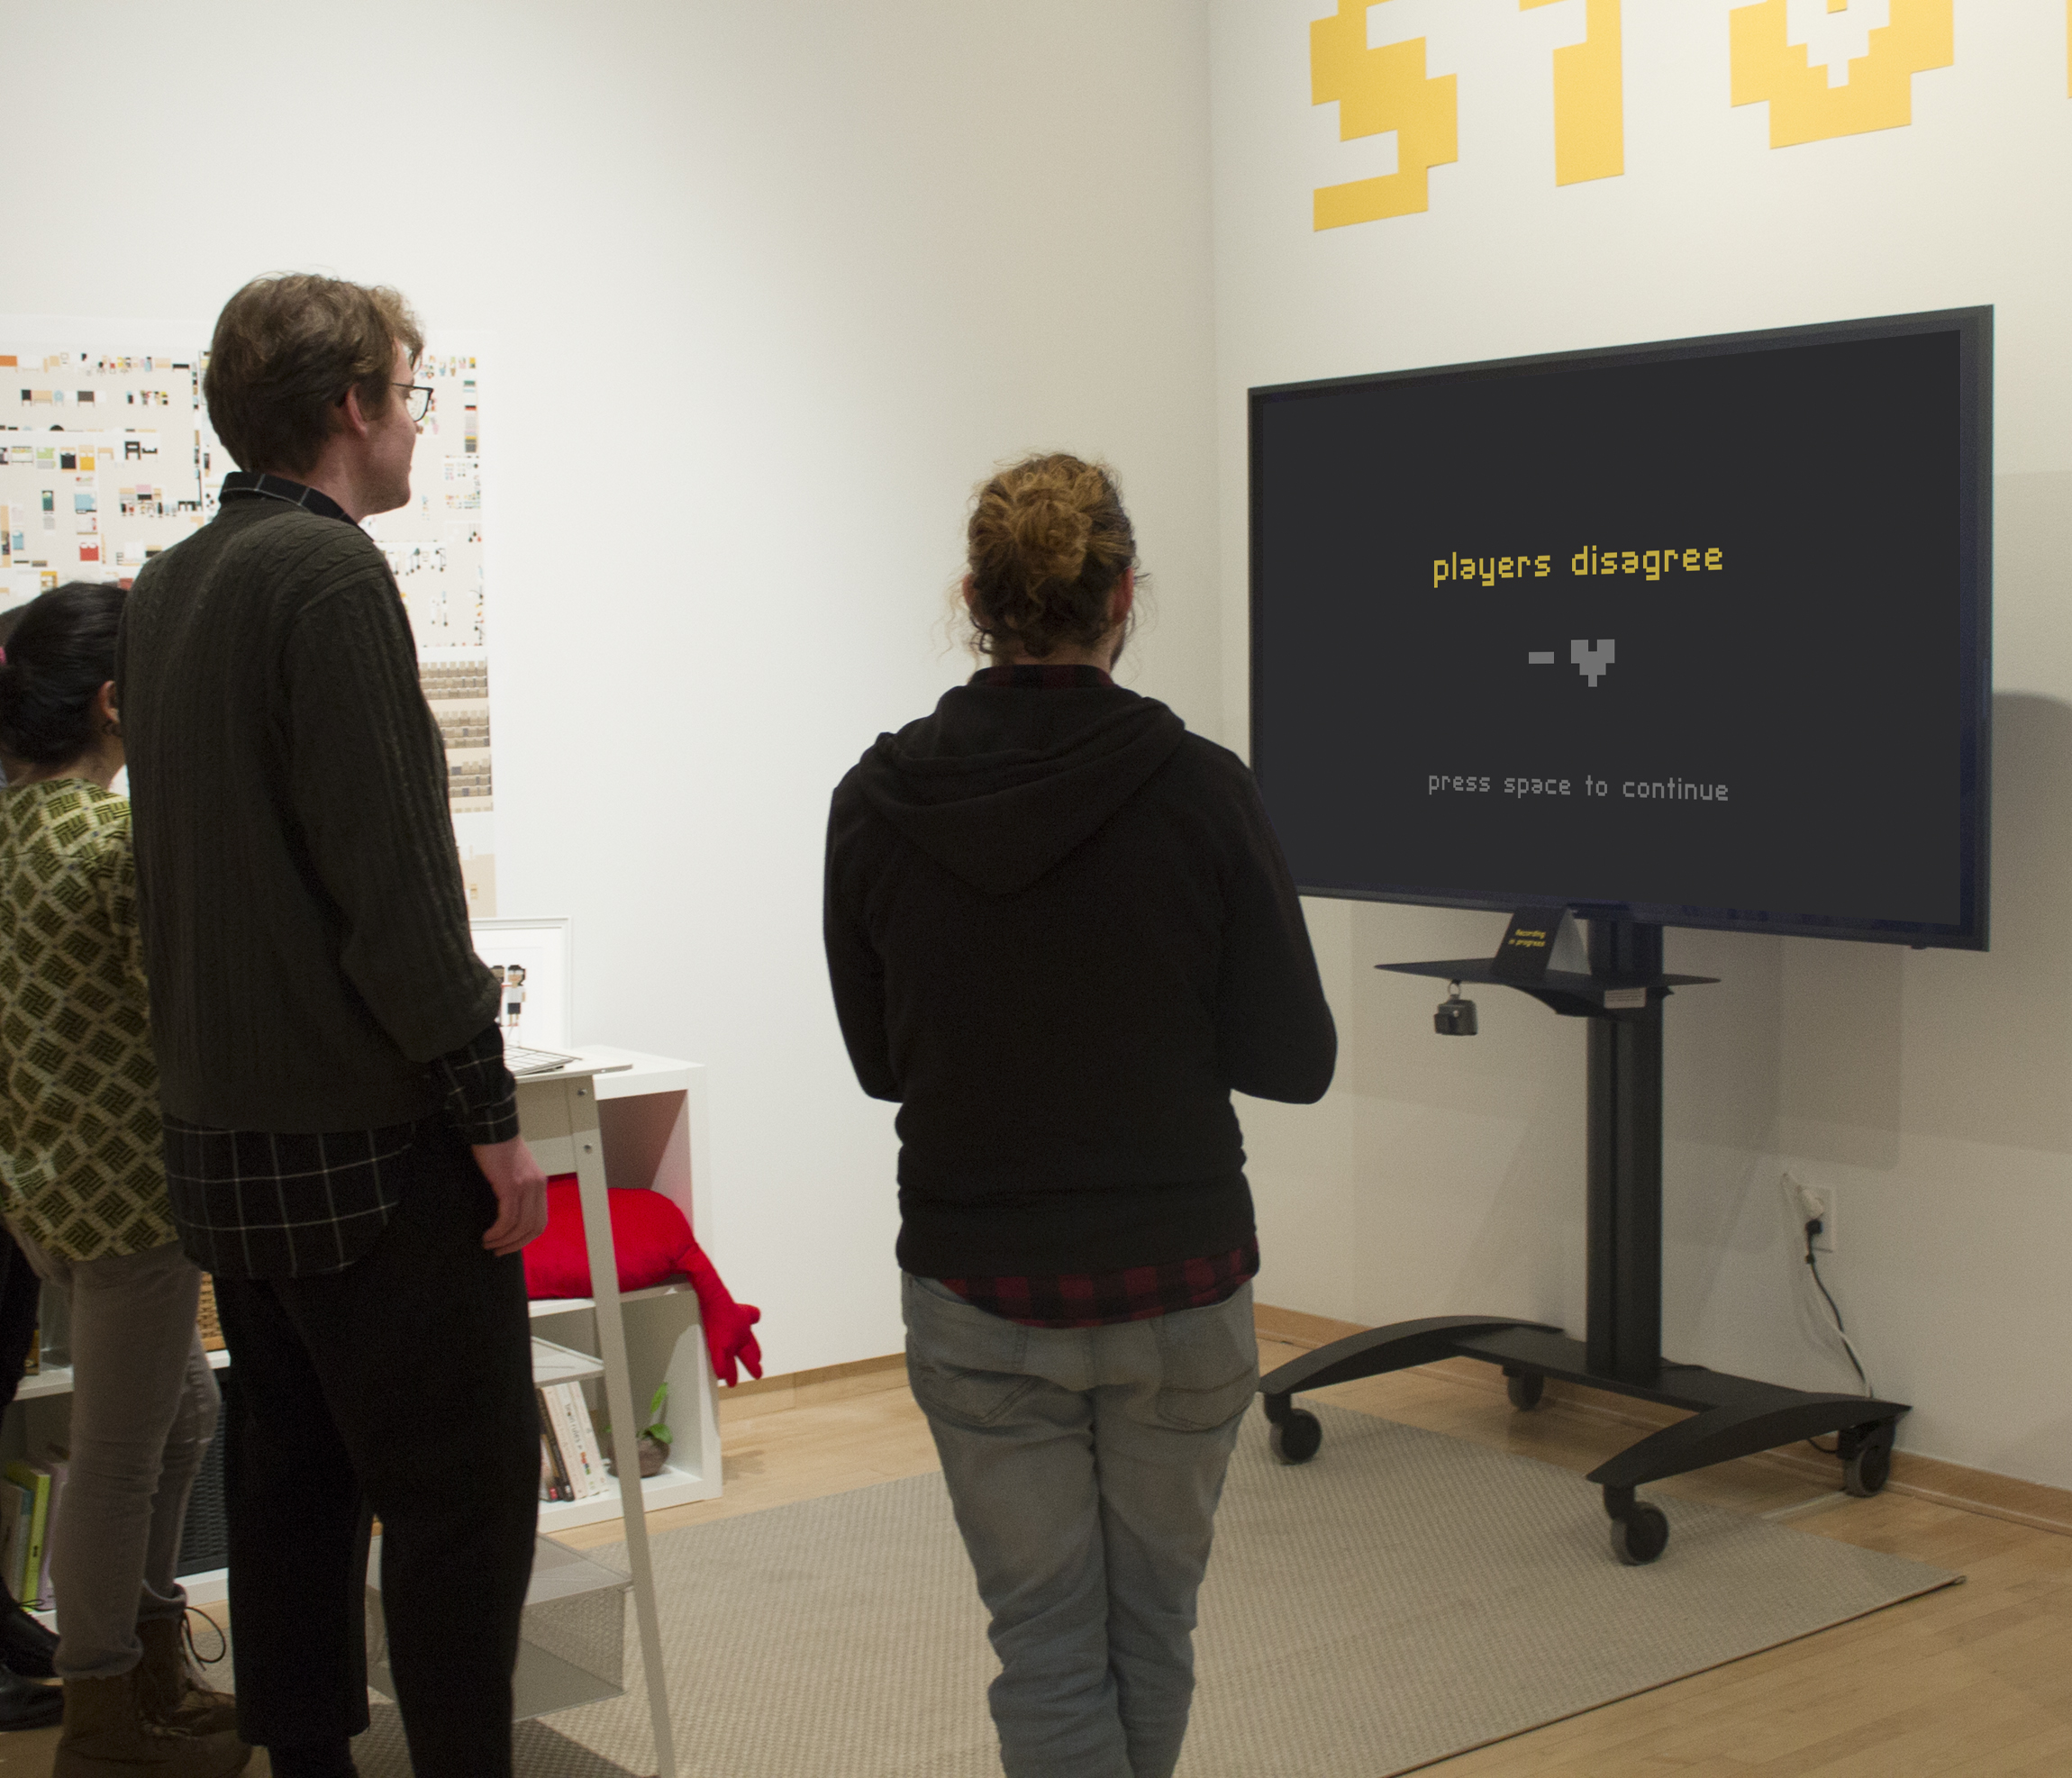 """A group of people stand in front of a large TV with the words, """"players disagree"""" and a minus symbol next to a heart"""